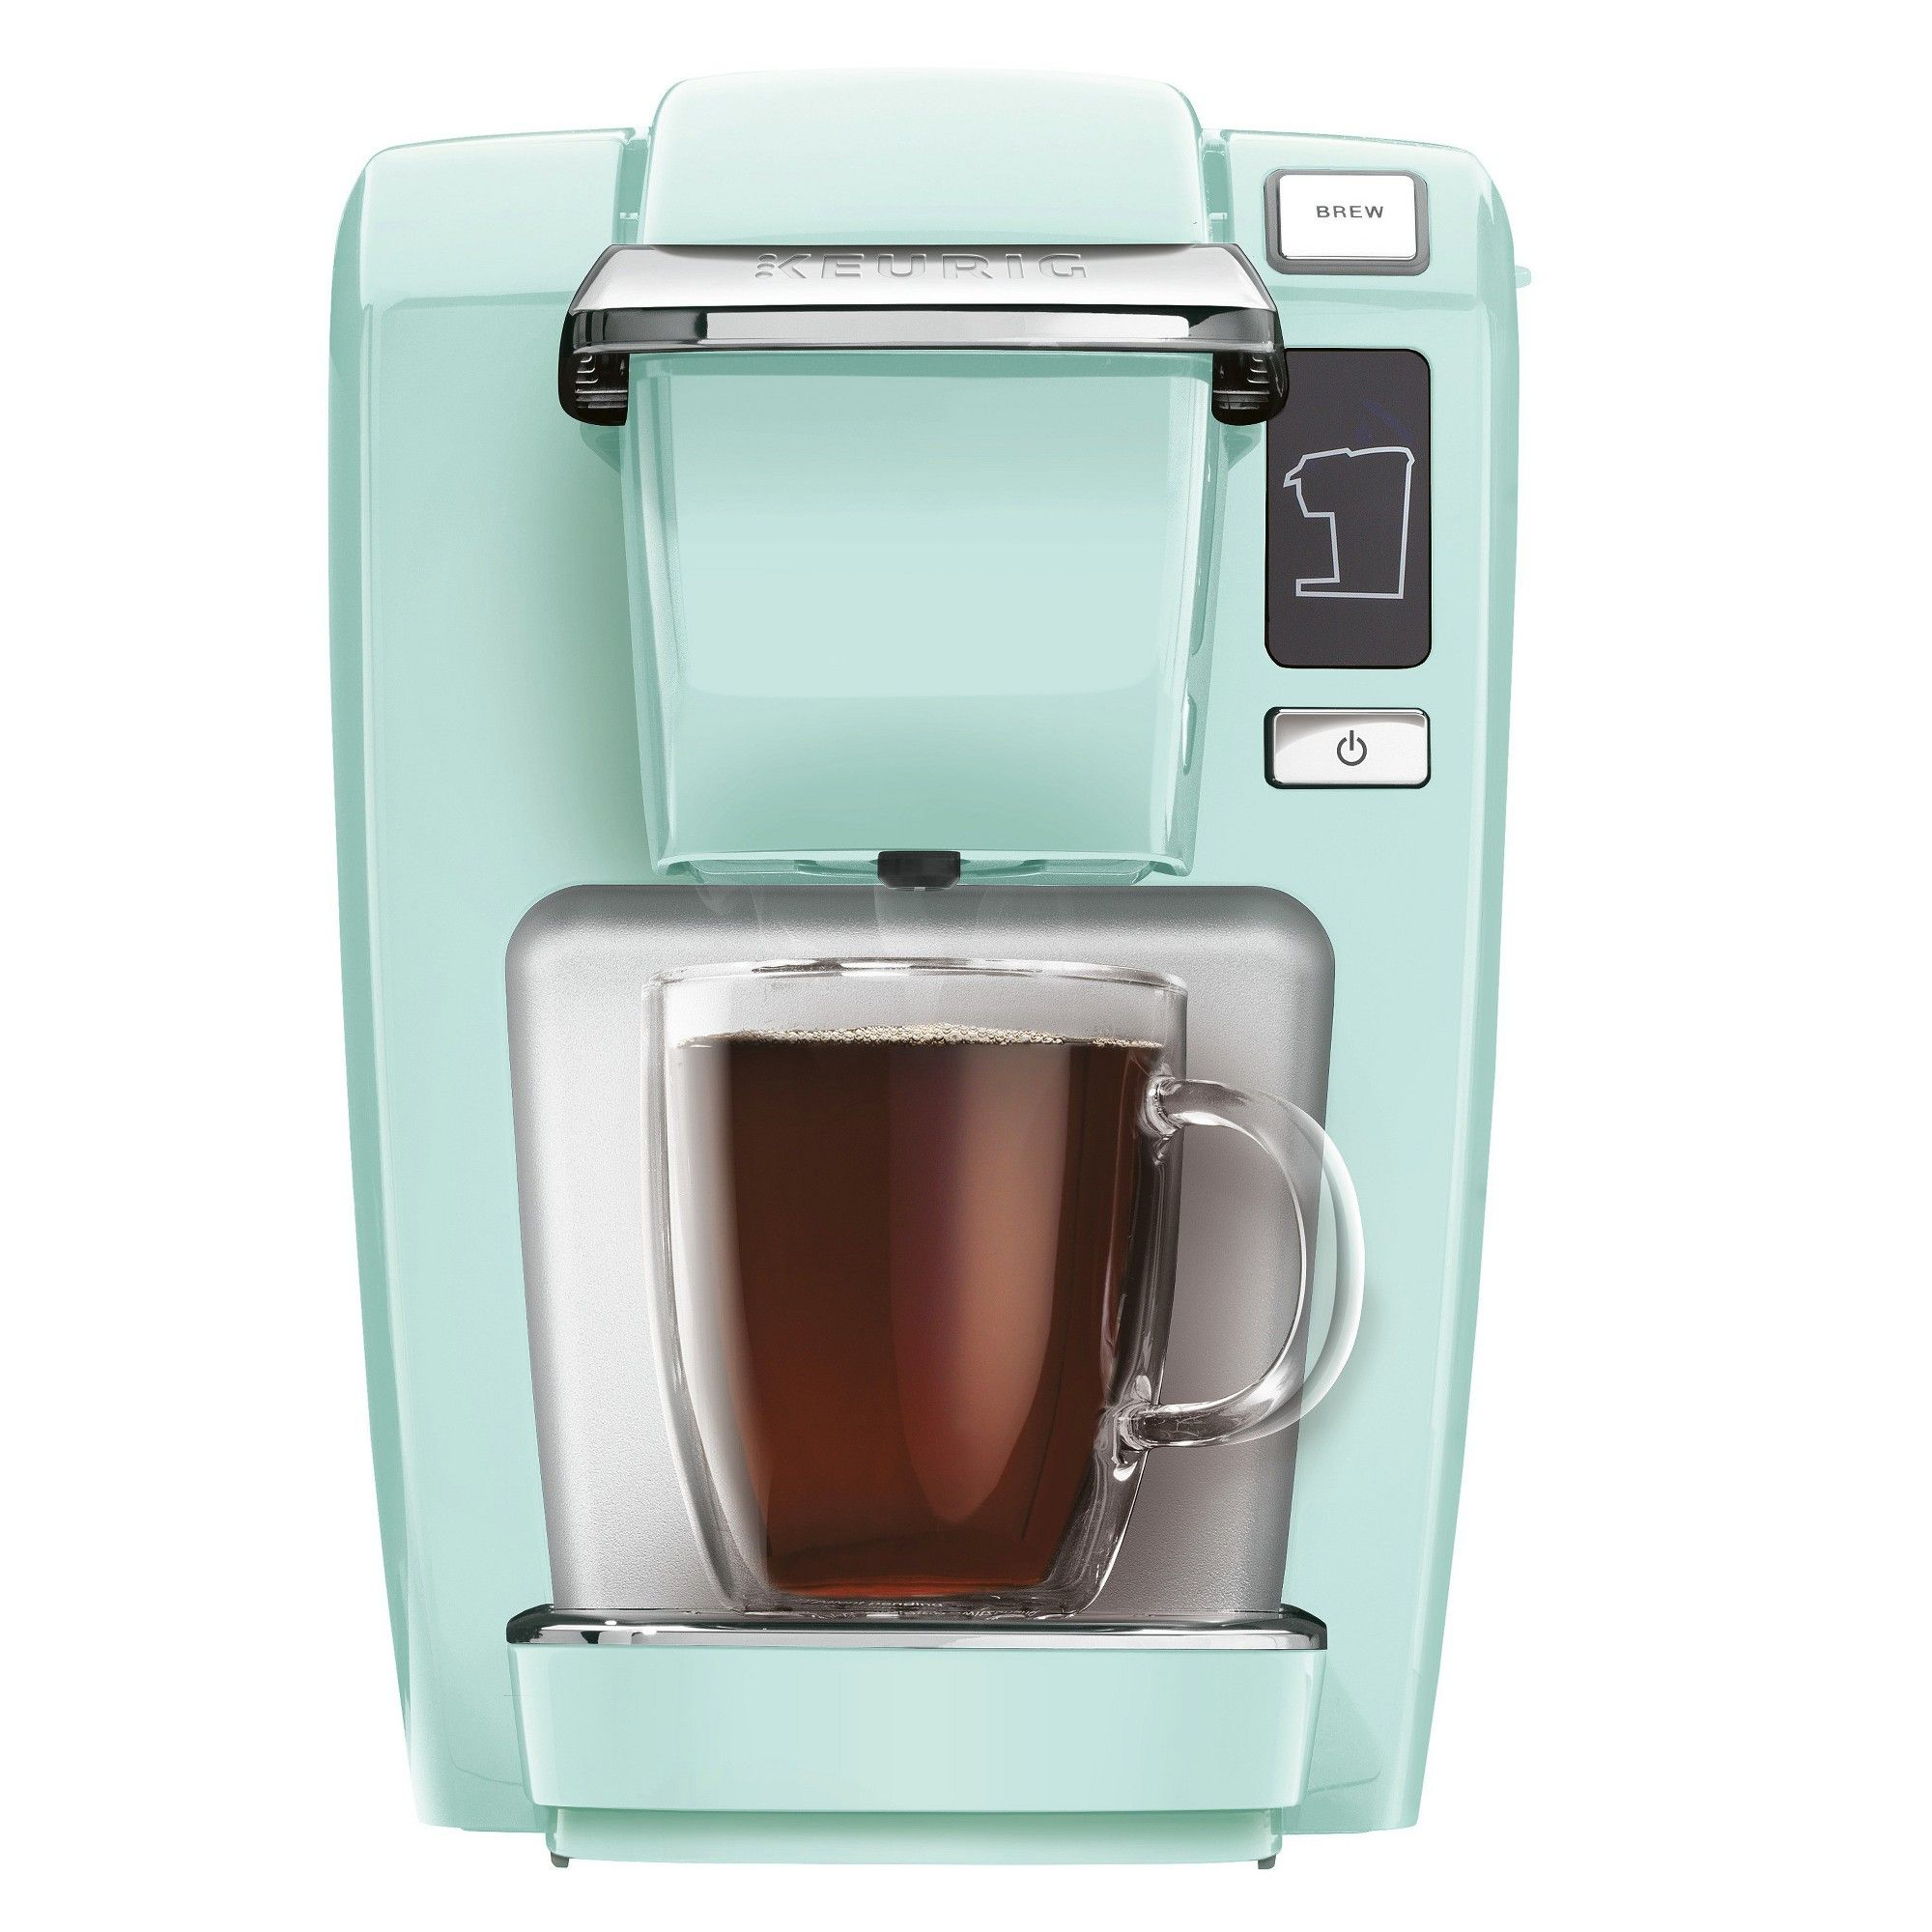 Keurig Plus Brewing System Oasis Green (K15) Pod coffee